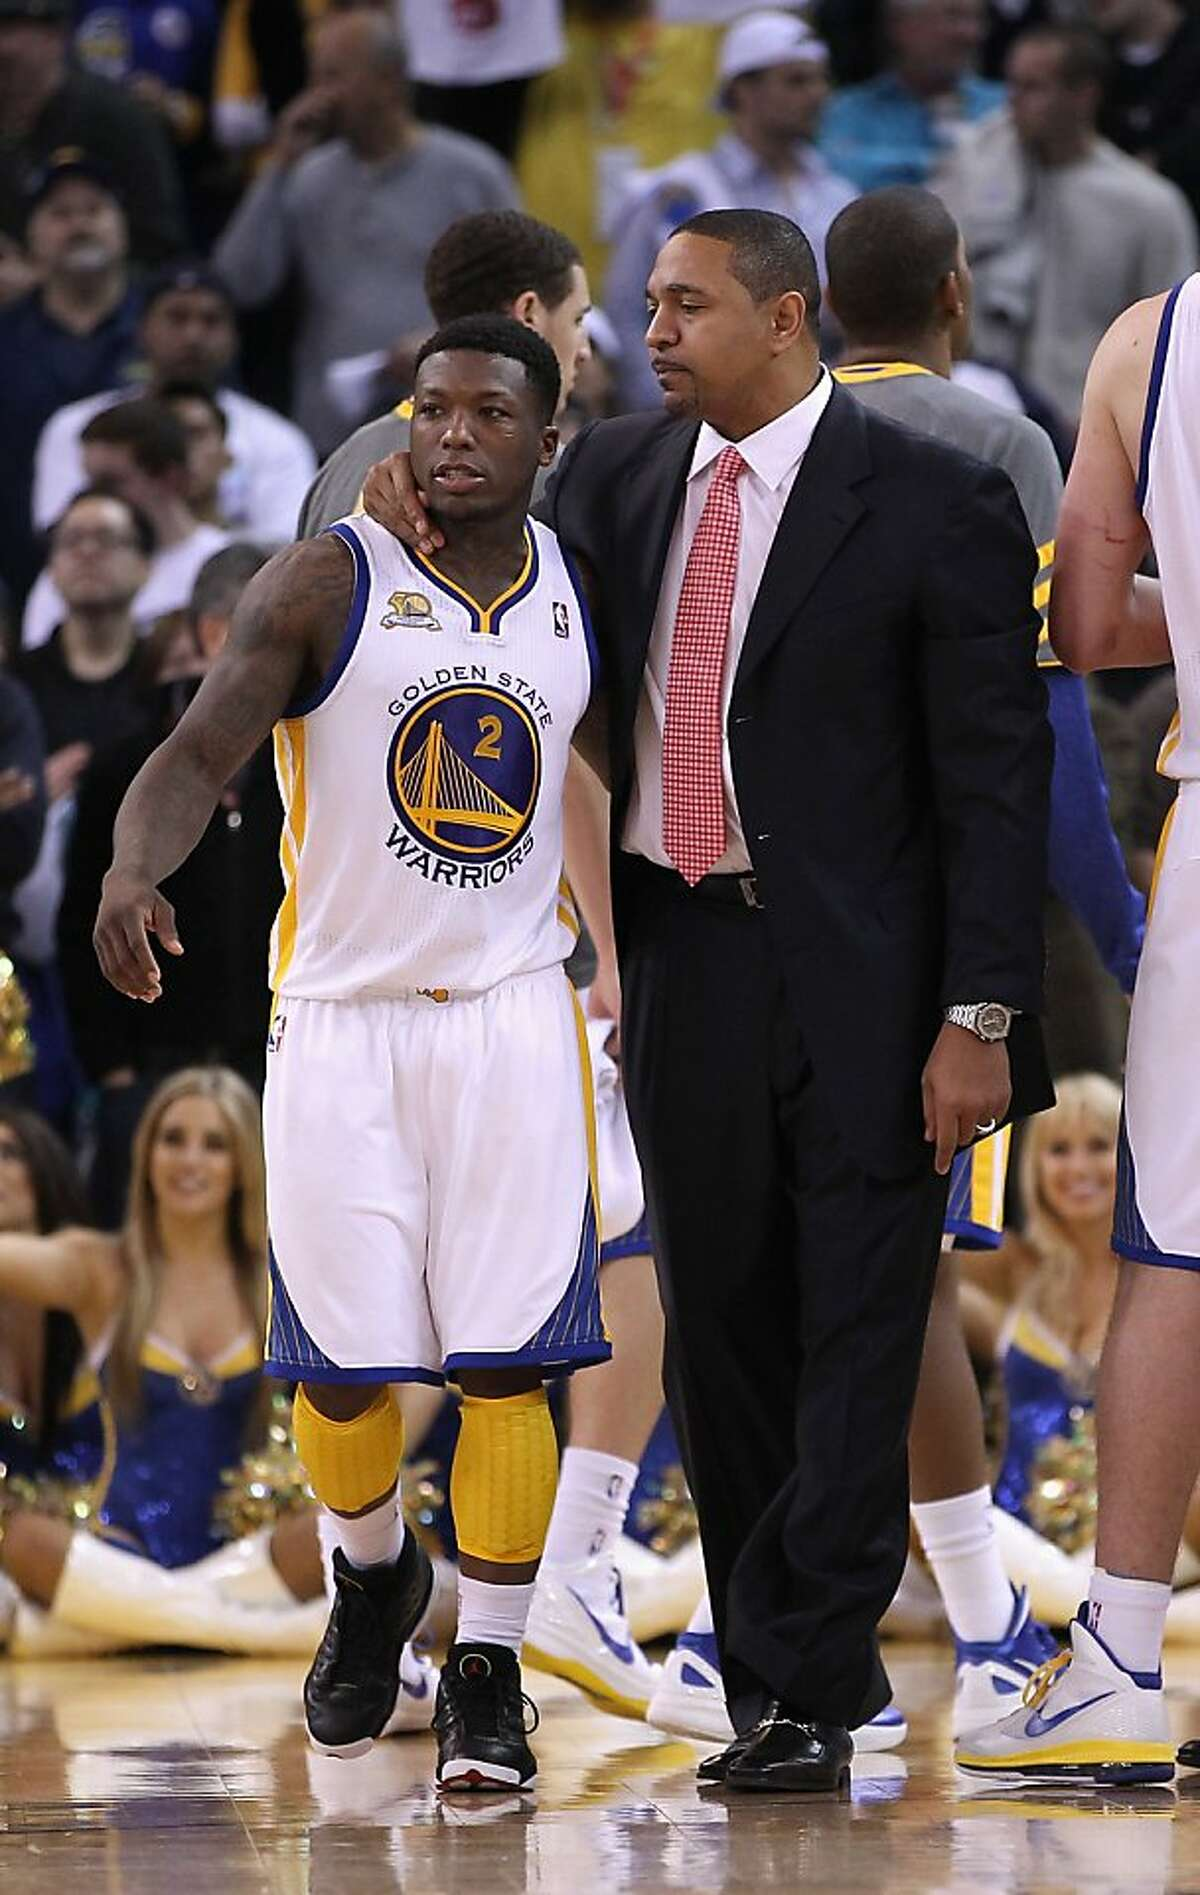 OAKLAND, CA - JANUARY 10: Head coach Mark Jackson of the Golden State Warriors talks to Nate Robinson #2 of the Golden State Warriors during their game against the Miami Heat at Oracle Arena on January 10, 2012 in Oakland, California. NOTE TO USER: User expressly acknowledges and agrees that, by downloading and or using this photograph, User is consenting to the terms and conditions of the Getty Images License Agreement. (Photo by Ezra Shaw/Getty Images)